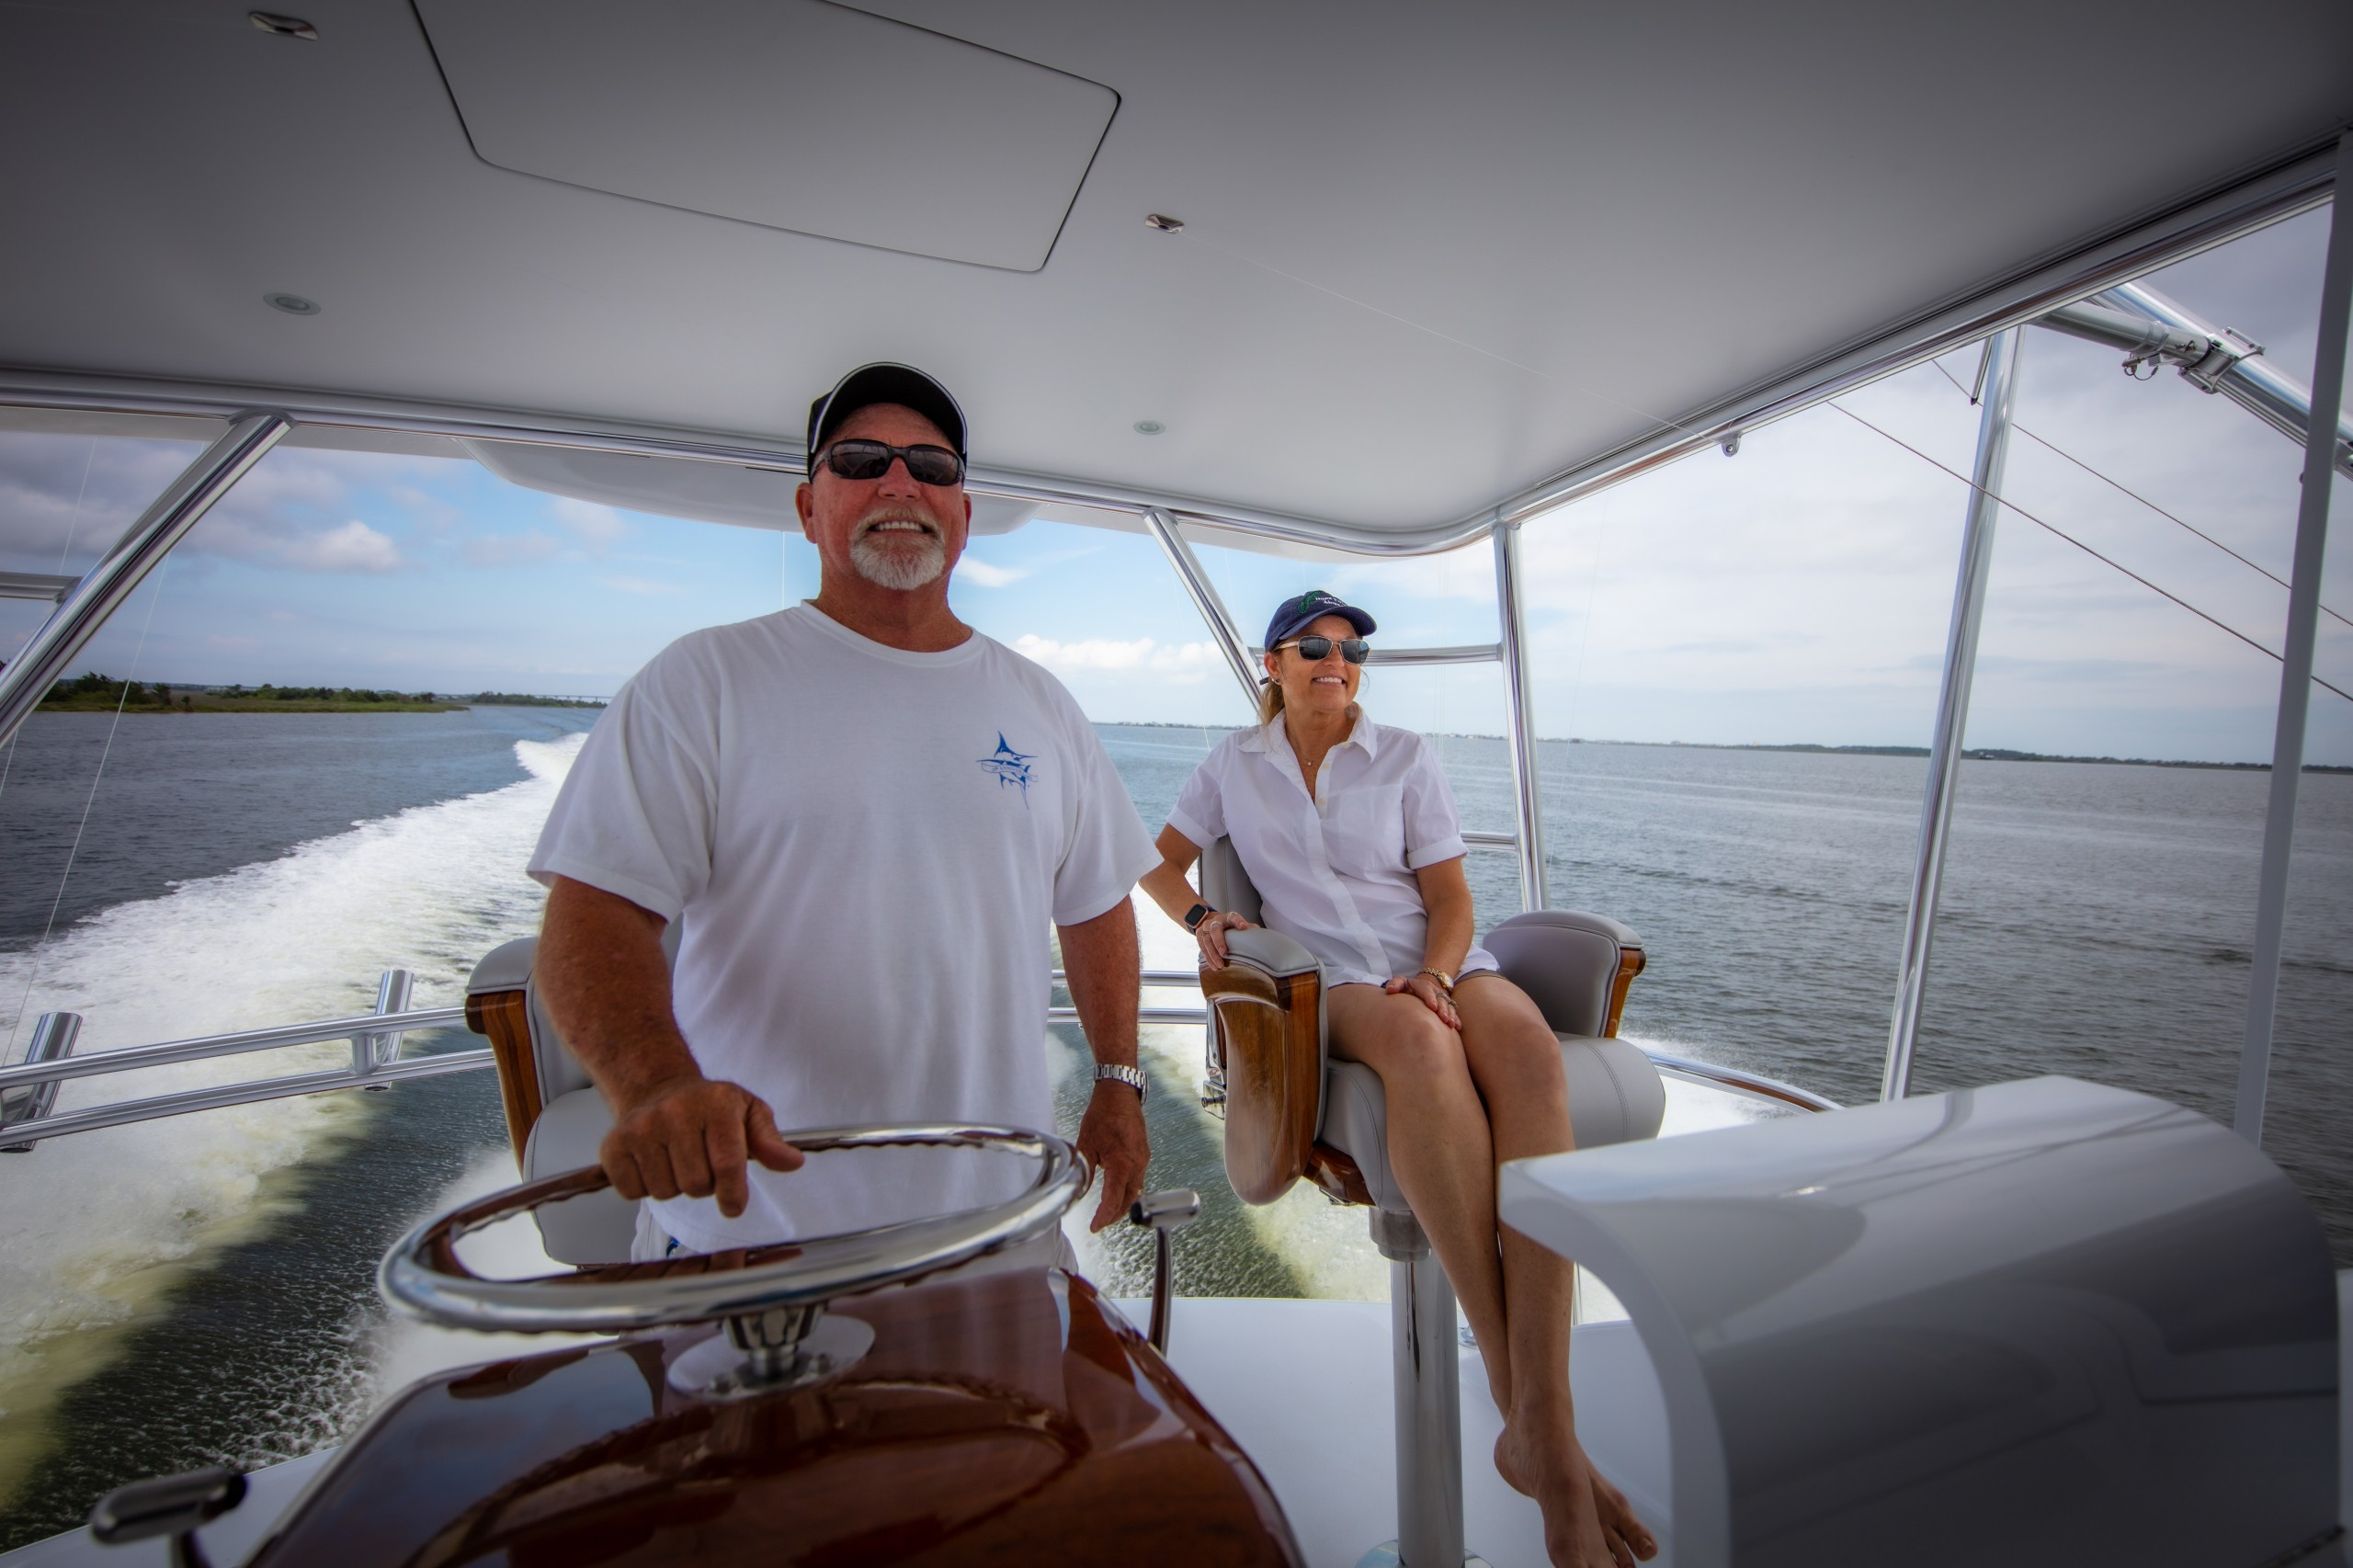 Paul and Robin Mann of Paull Mann Custom Yachts